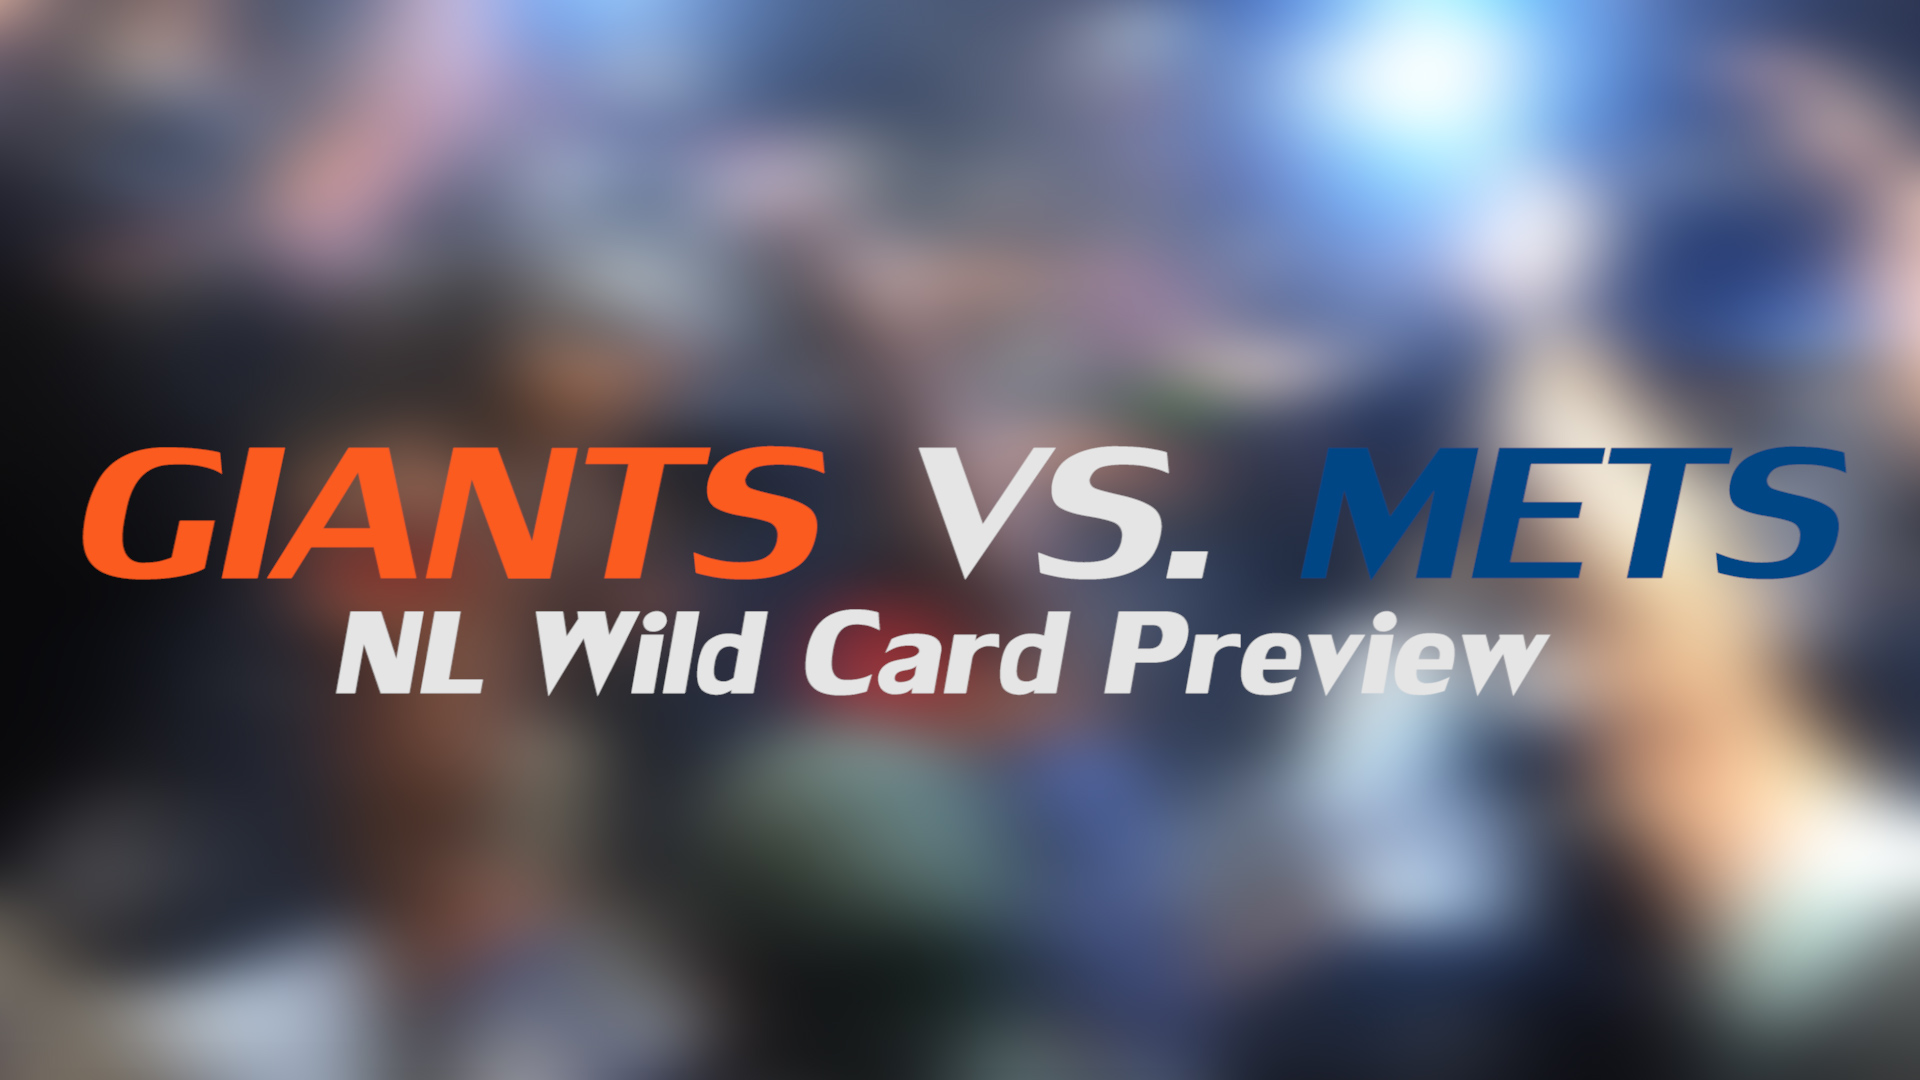 Giants vs. Mets 2016 NL Wild Card preview